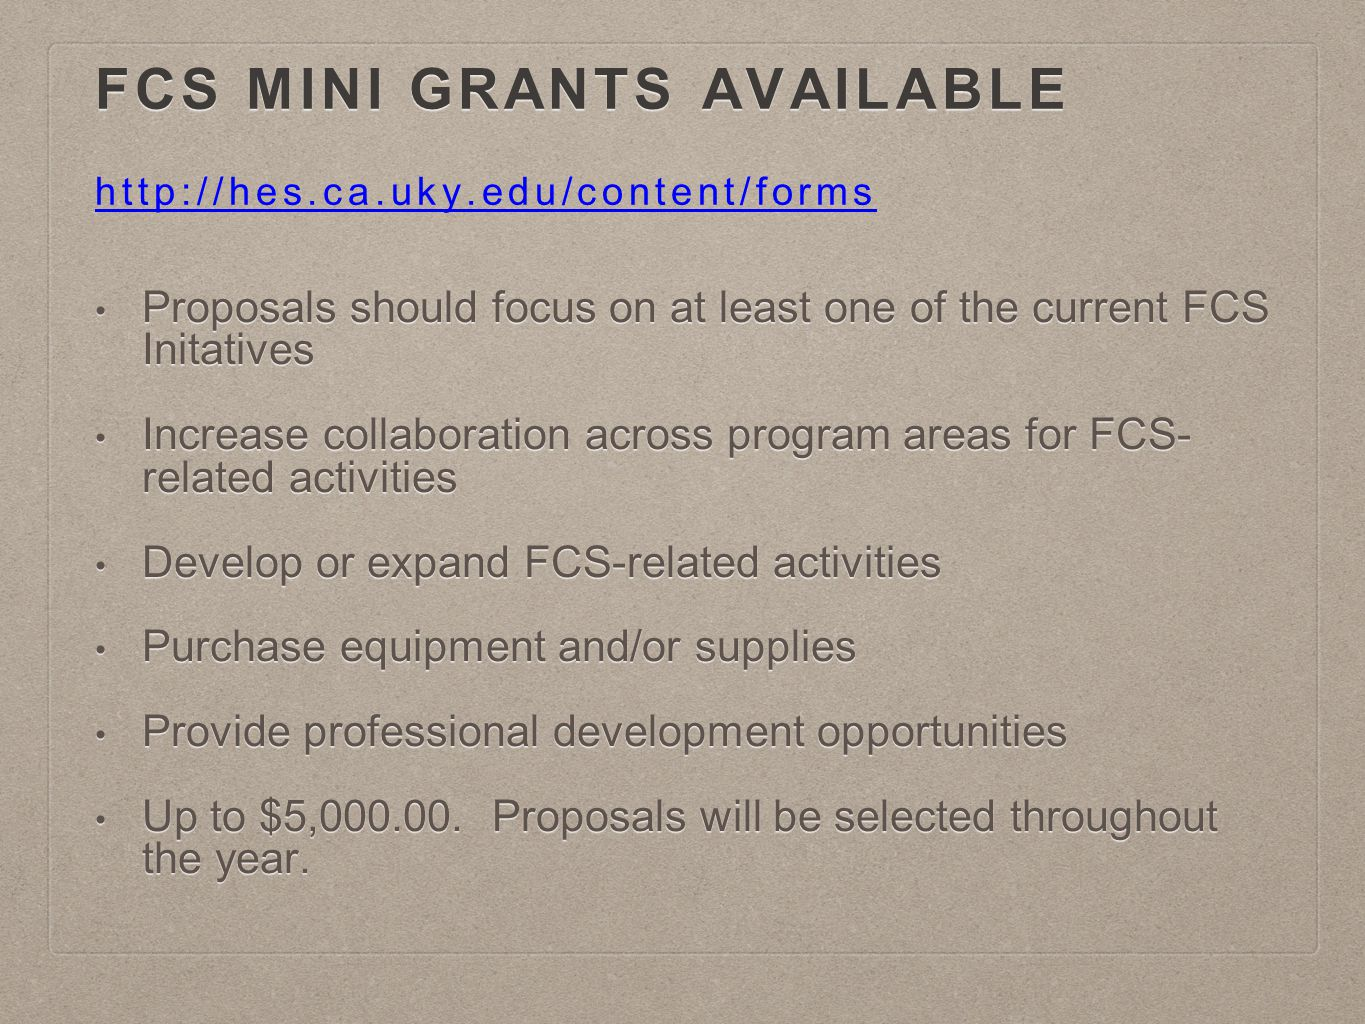 FCS MINI GRANTS AVAILABLE FCS MINI GRANTS AVAILABLE http://hes.ca.uky.edu/content/forms http://hes.ca.uky.edu/content/forms Proposals should focus on at least one of the current FCS Initatives Proposals should focus on at least one of the current FCS Initatives Increase collaboration across program areas for FCS- related activities Increase collaboration across program areas for FCS- related activities Develop or expand FCS-related activities Develop or expand FCS-related activities Purchase equipment and/or supplies Purchase equipment and/or supplies Provide professional development opportunities Provide professional development opportunities Up to $5,000.00.